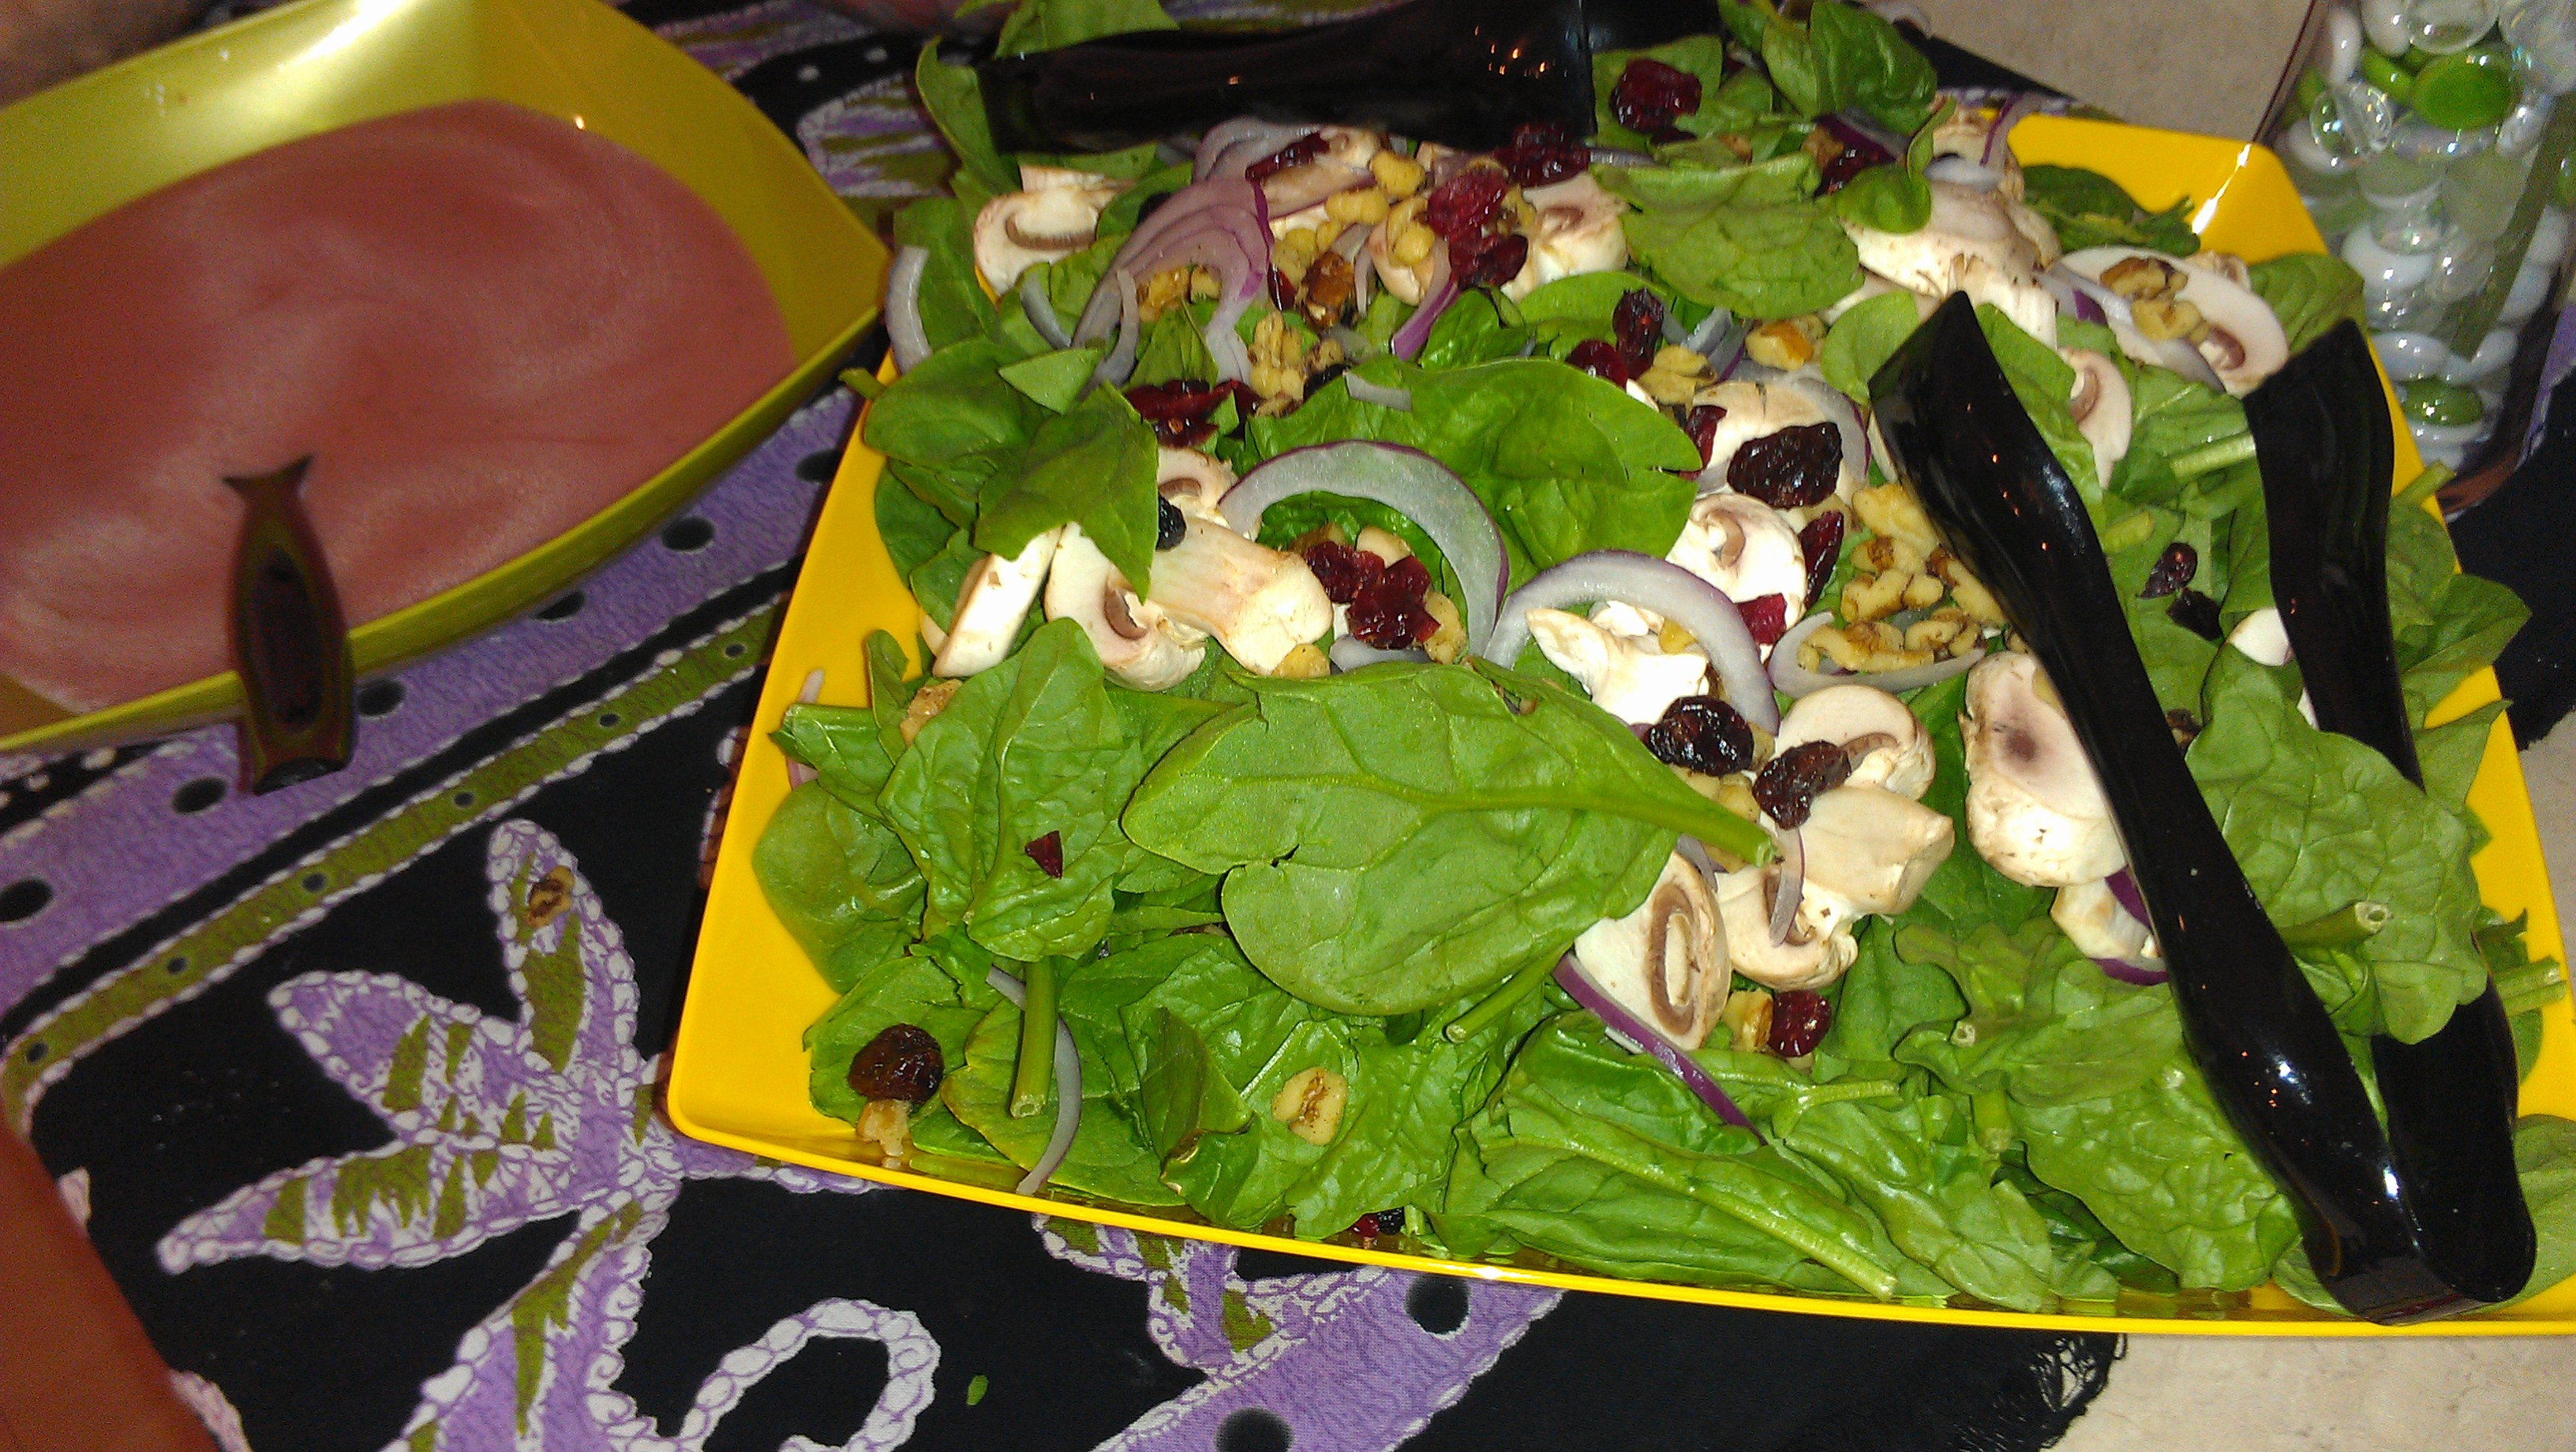 Spinach salad and strawberry vinaigrette pic